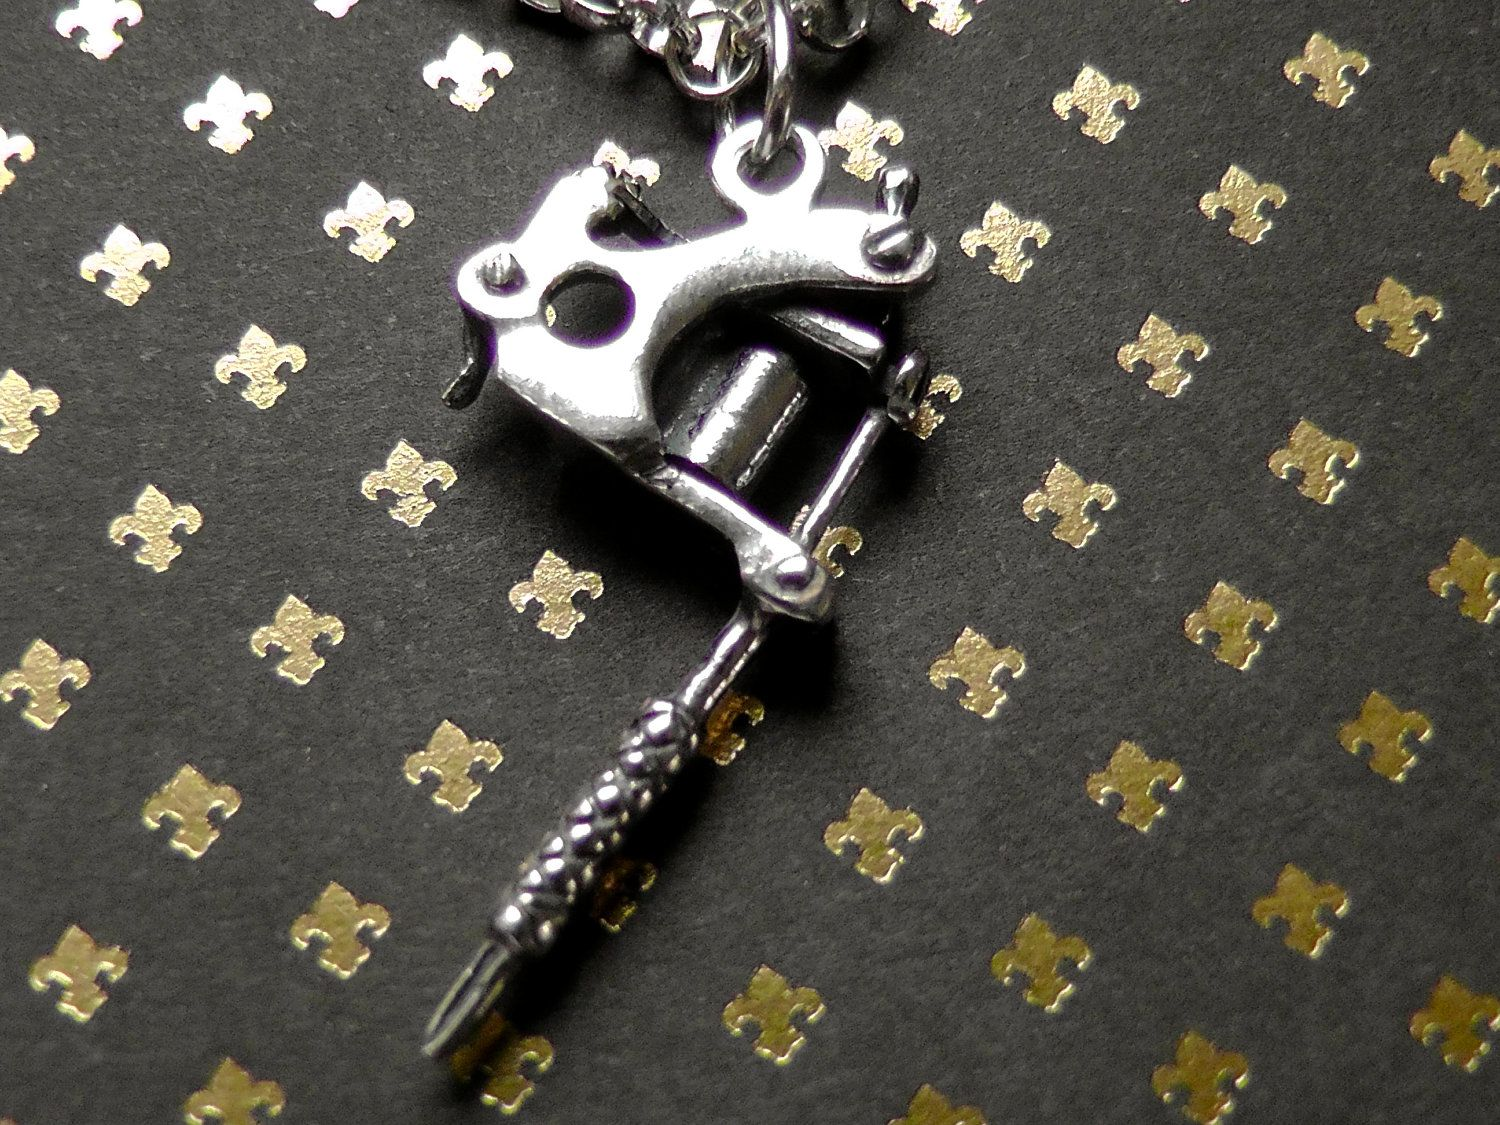 Sterling silver tattoo gun charm necklace silver 5500 via etsy sterling silver tattoo gun charm necklace silver 5500 via etsy aloadofball Images